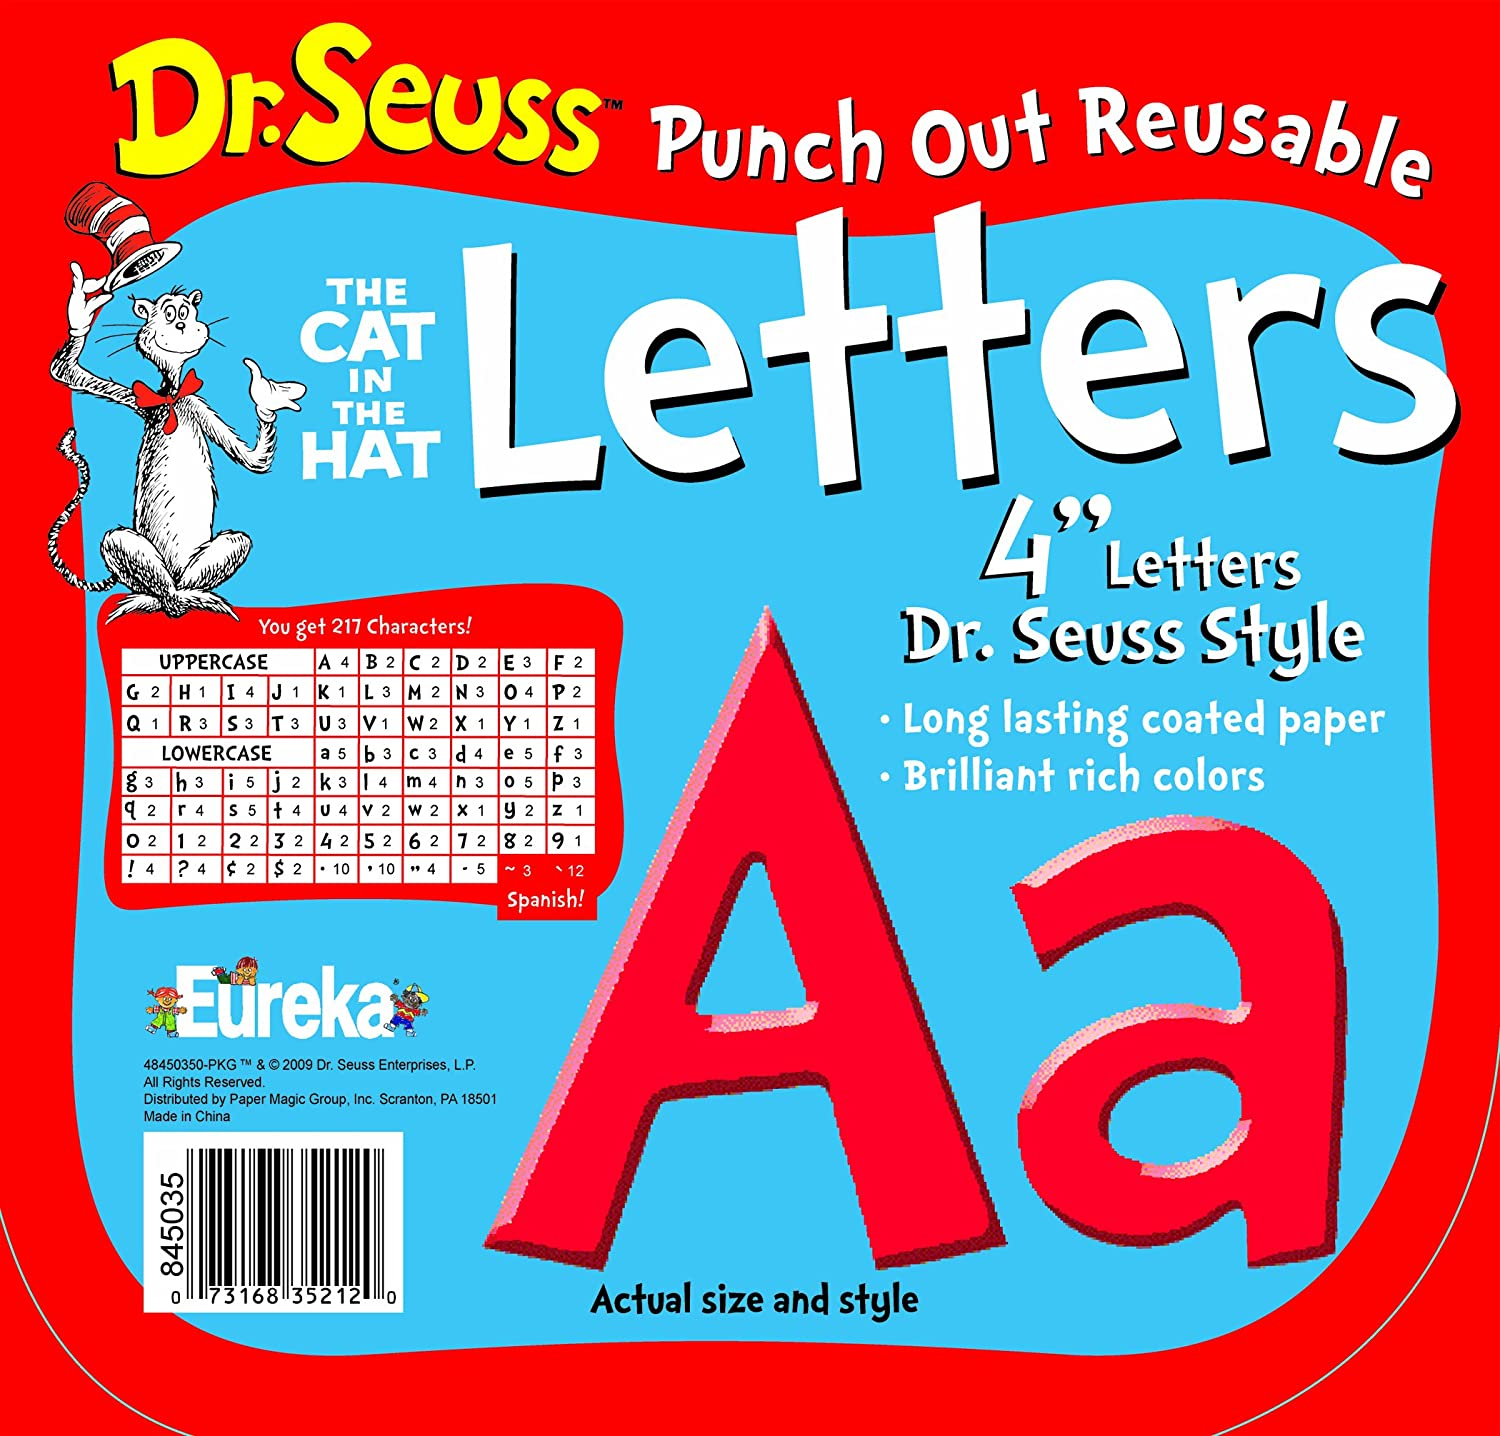 Paper Magic 487215 Eureka Dr. Seuss Punch Out Reusable Decorative 4-Inch Letters, Stripes, Set of 200 Paper Magic Group Inc.